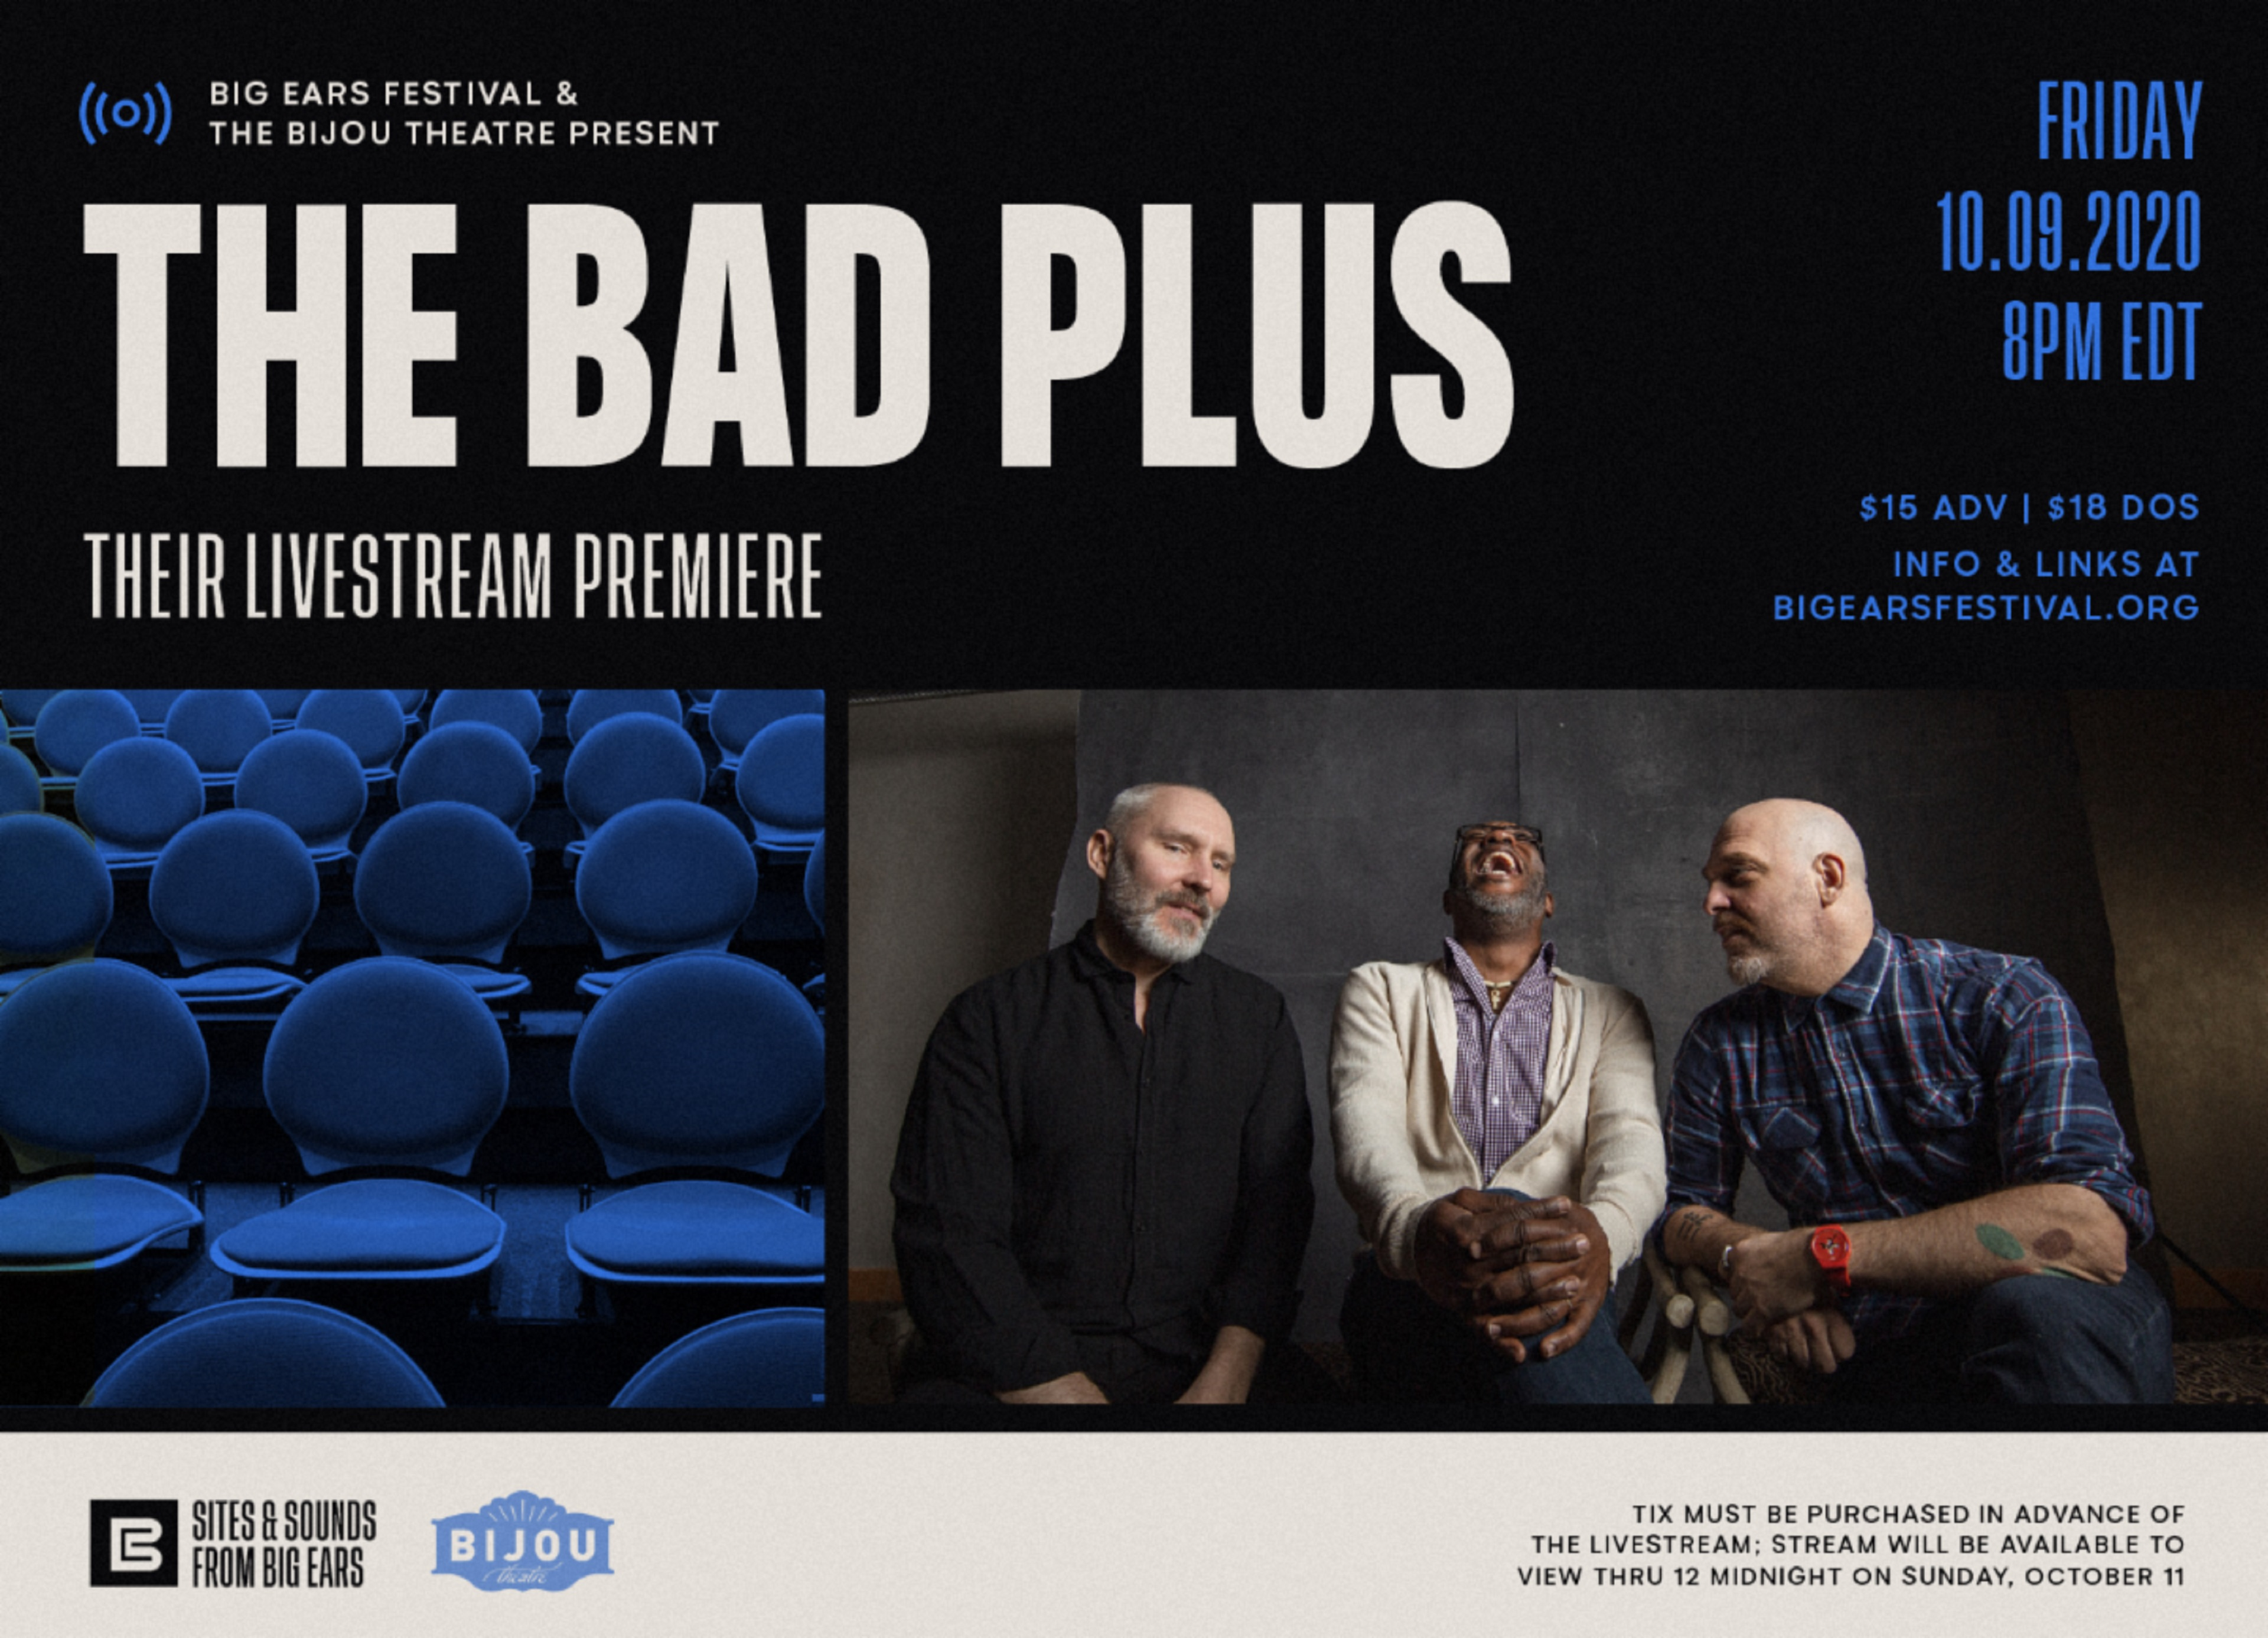 The Bad Plus to perform livestream from Big Ears Fest in Knoxville this Friday